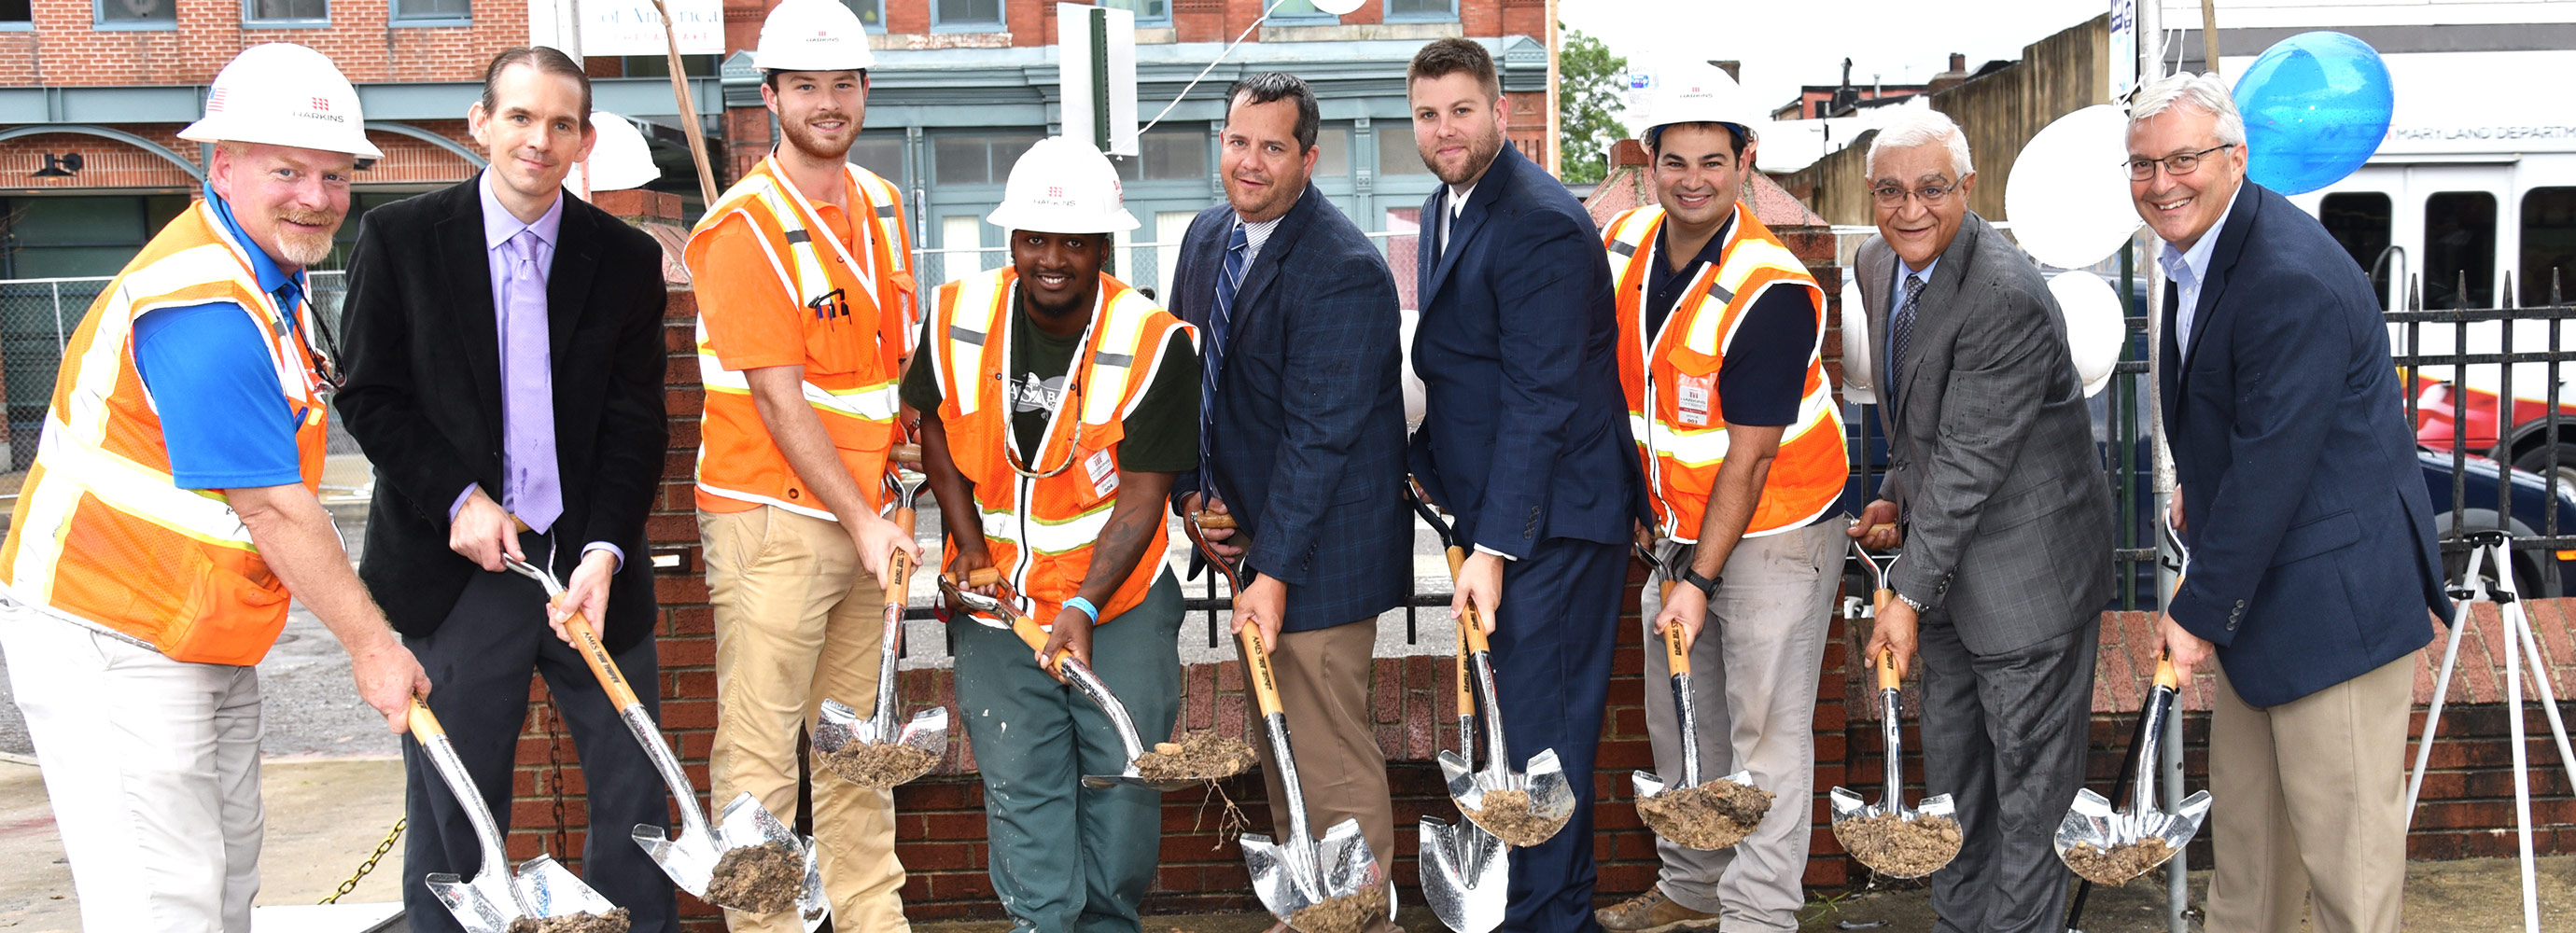 Side by side with shovels in hand for Paca House Renovation project groundbreaking